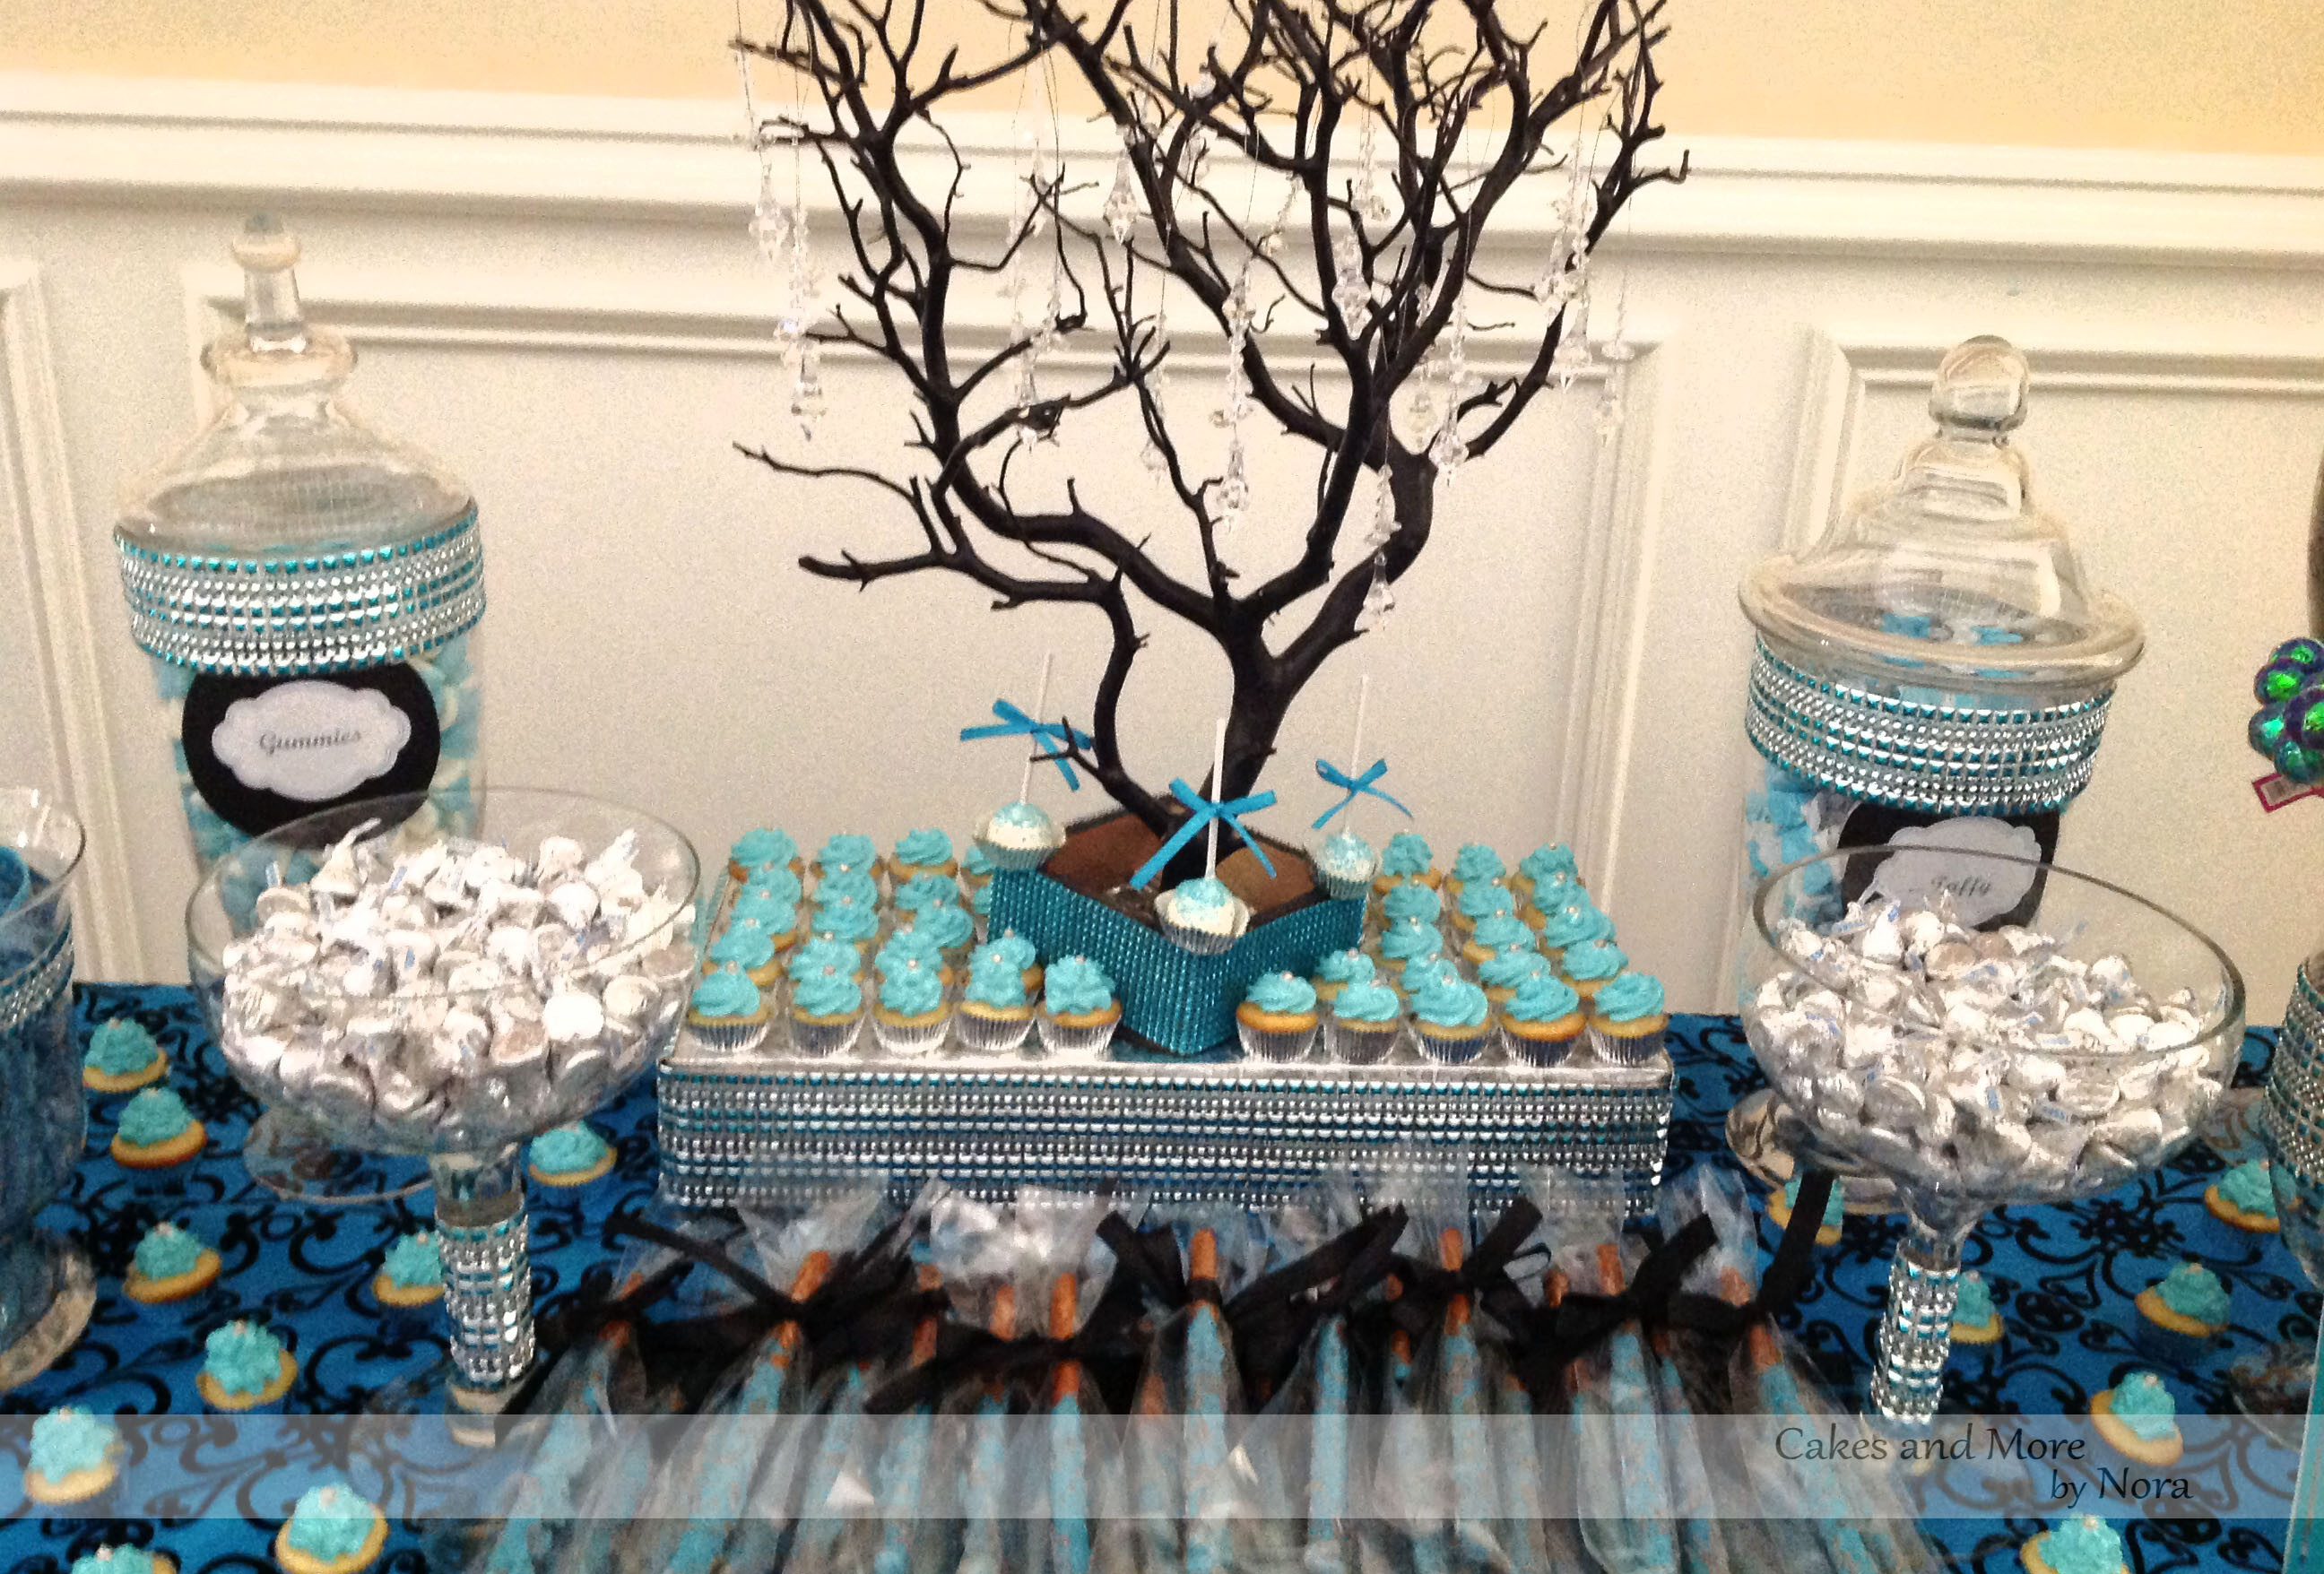 Best ideas about Sweet 16 Birthday Party . Save or Pin Masquerade Sweet 16 – Cakes and More by Nora Now.